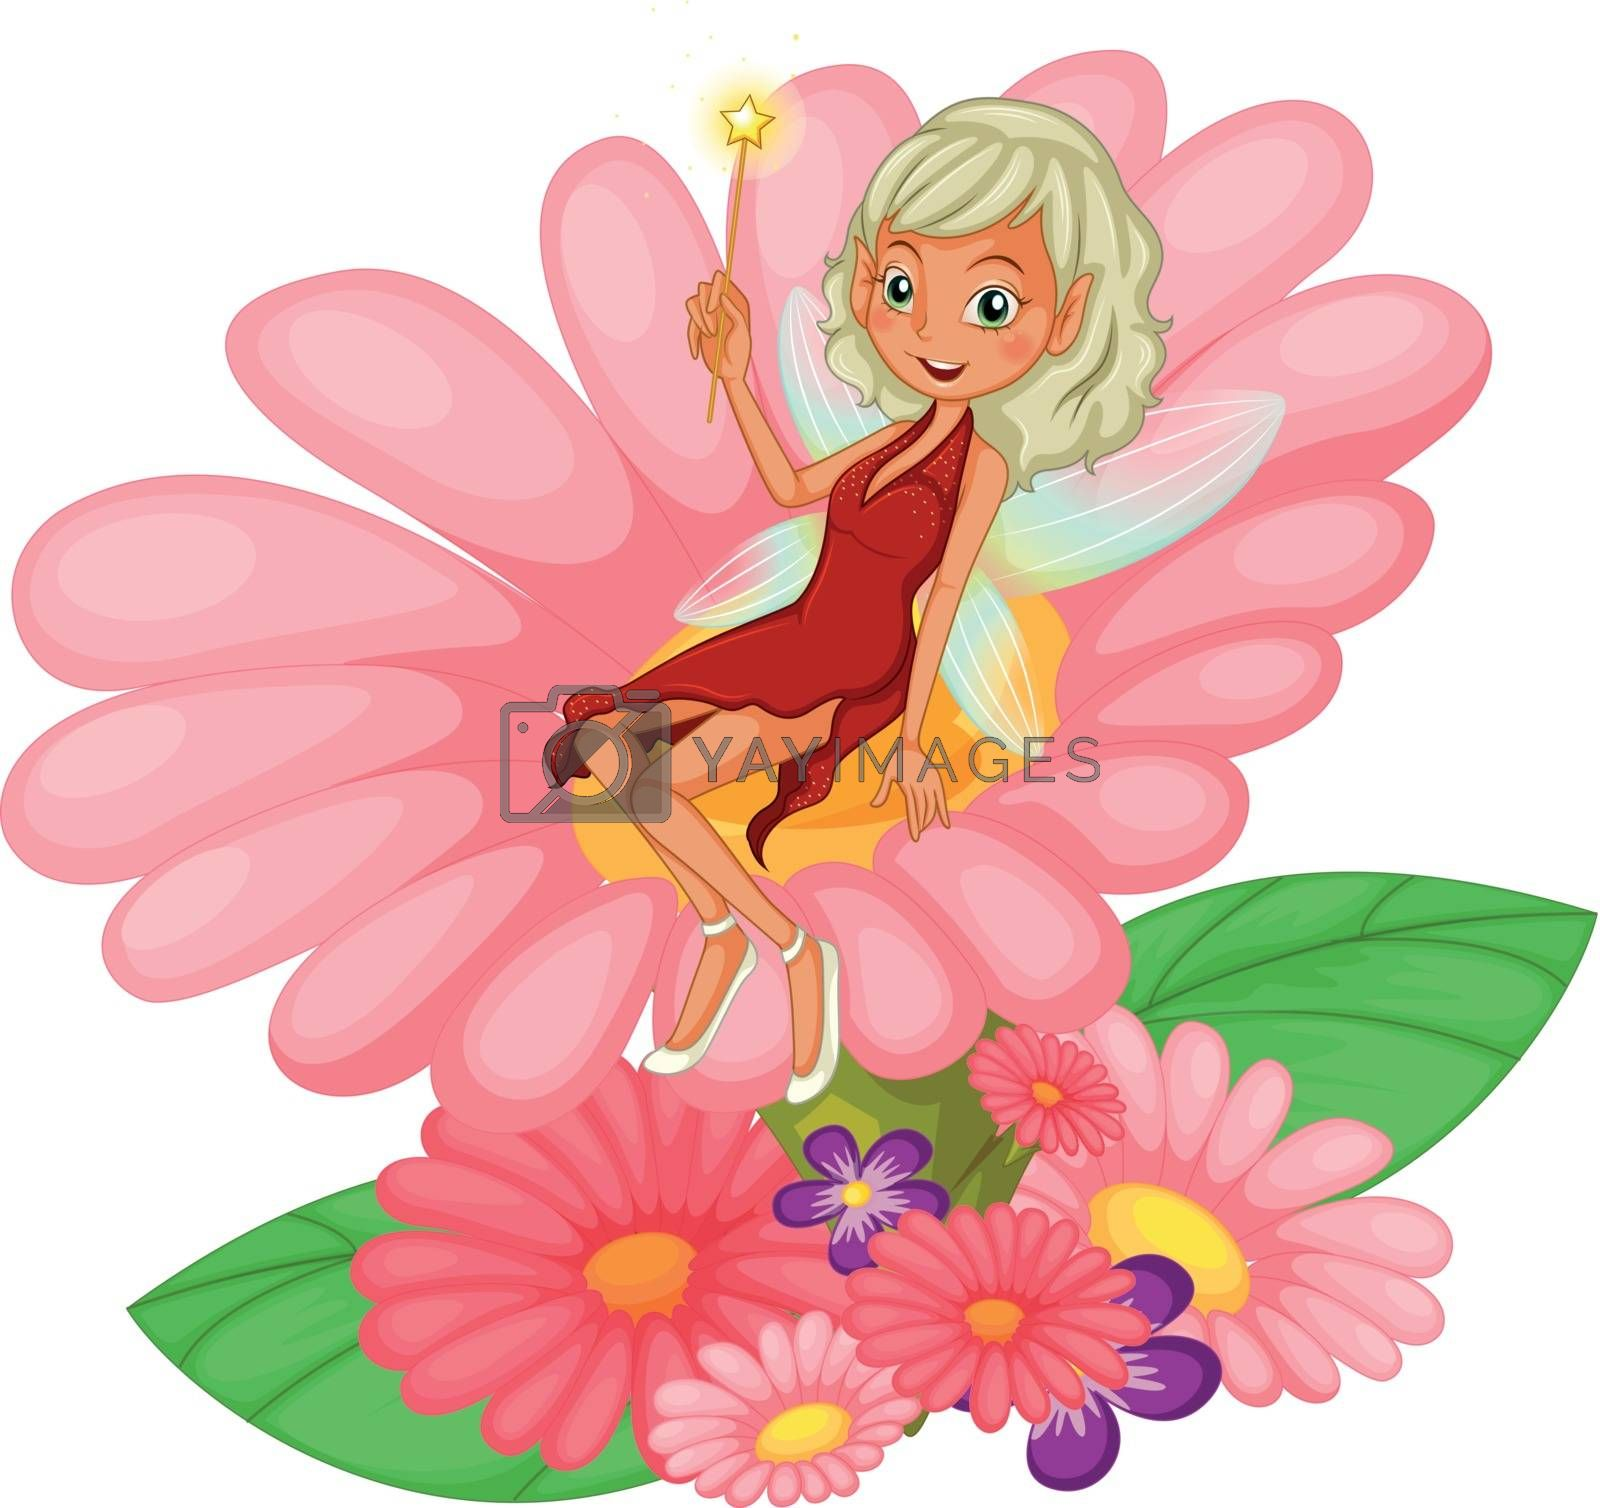 Illustration of a fairy sitting on a pink flower on a white background